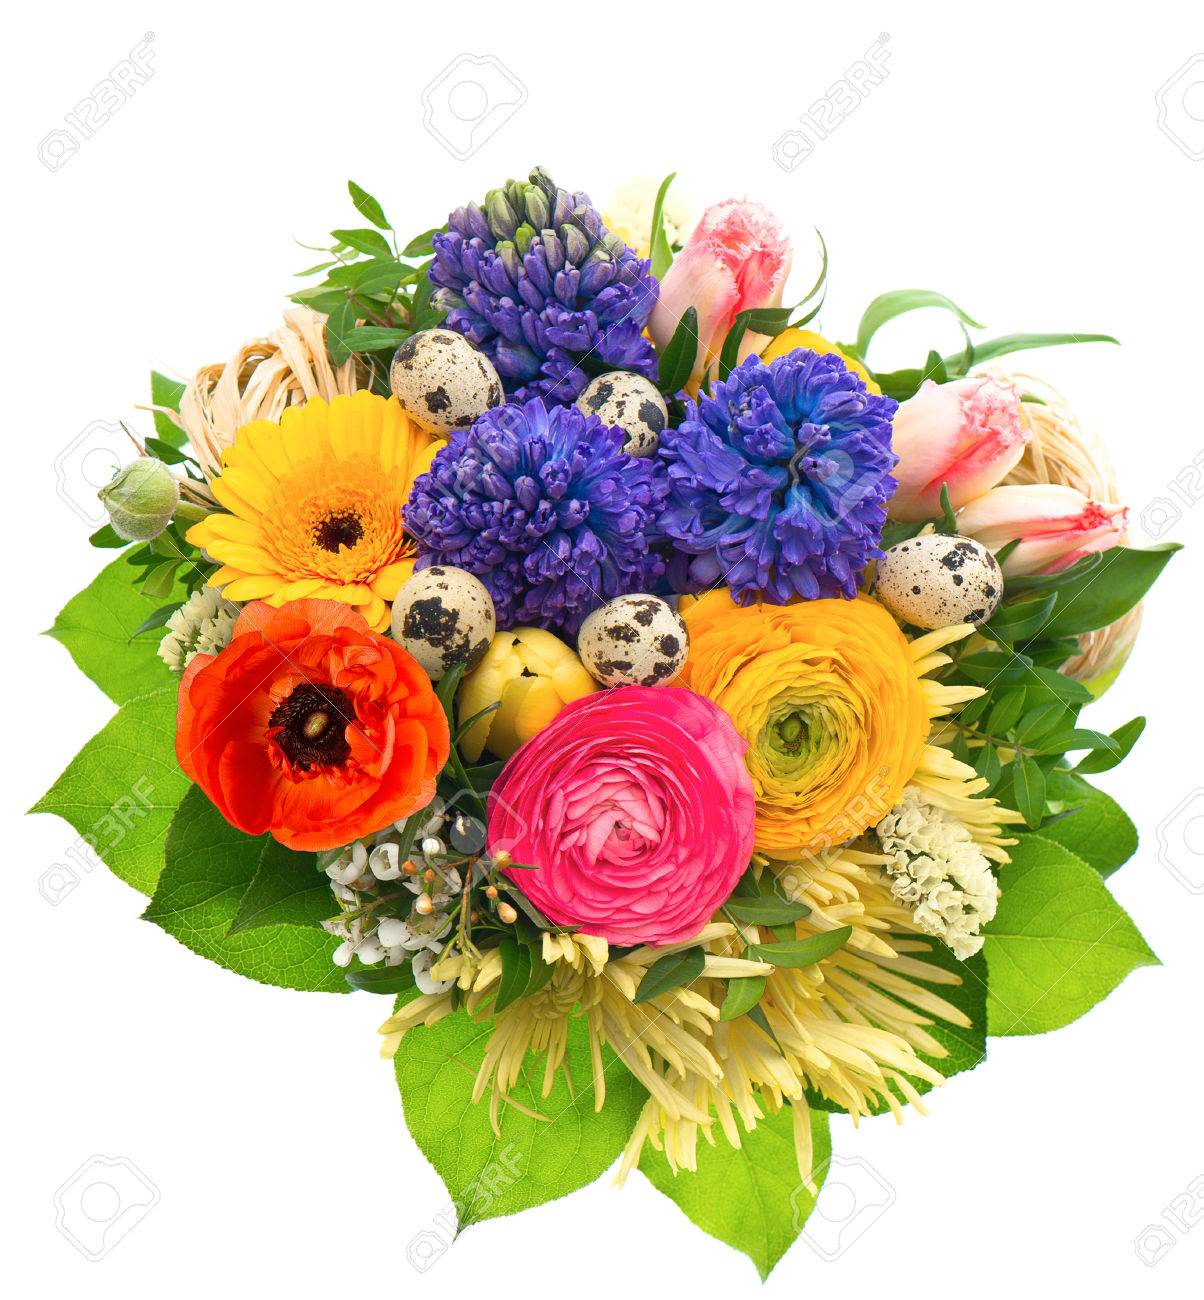 Beautiful Easter Bouquet Of Colorful Spring Flowers With Birds